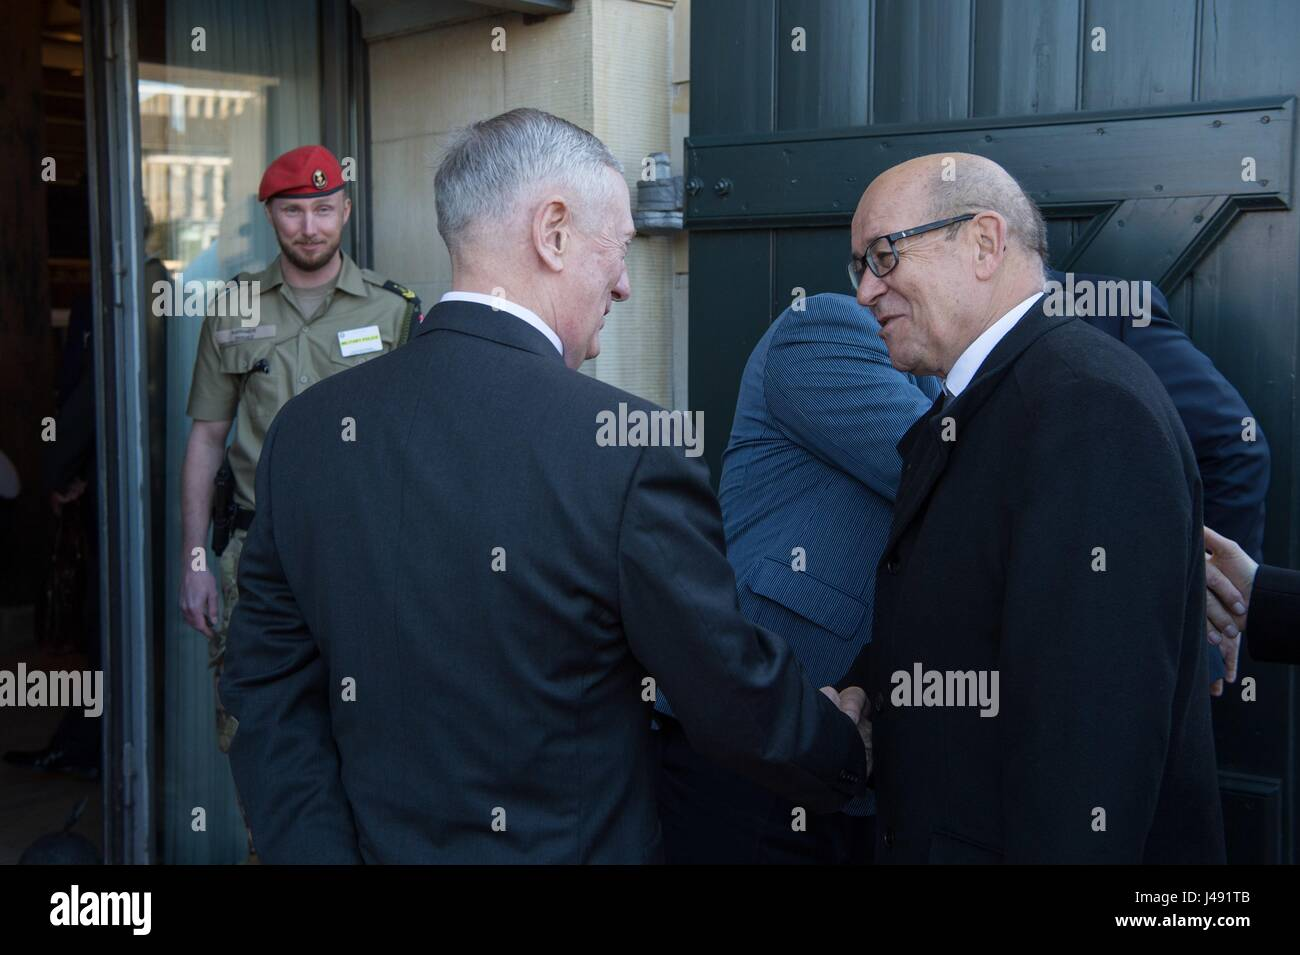 U.S. Secretary of Defense Jim Mattis, left, welcomes French Defence Minister Jean-Yves Le Drian, right, for the - Stock Image